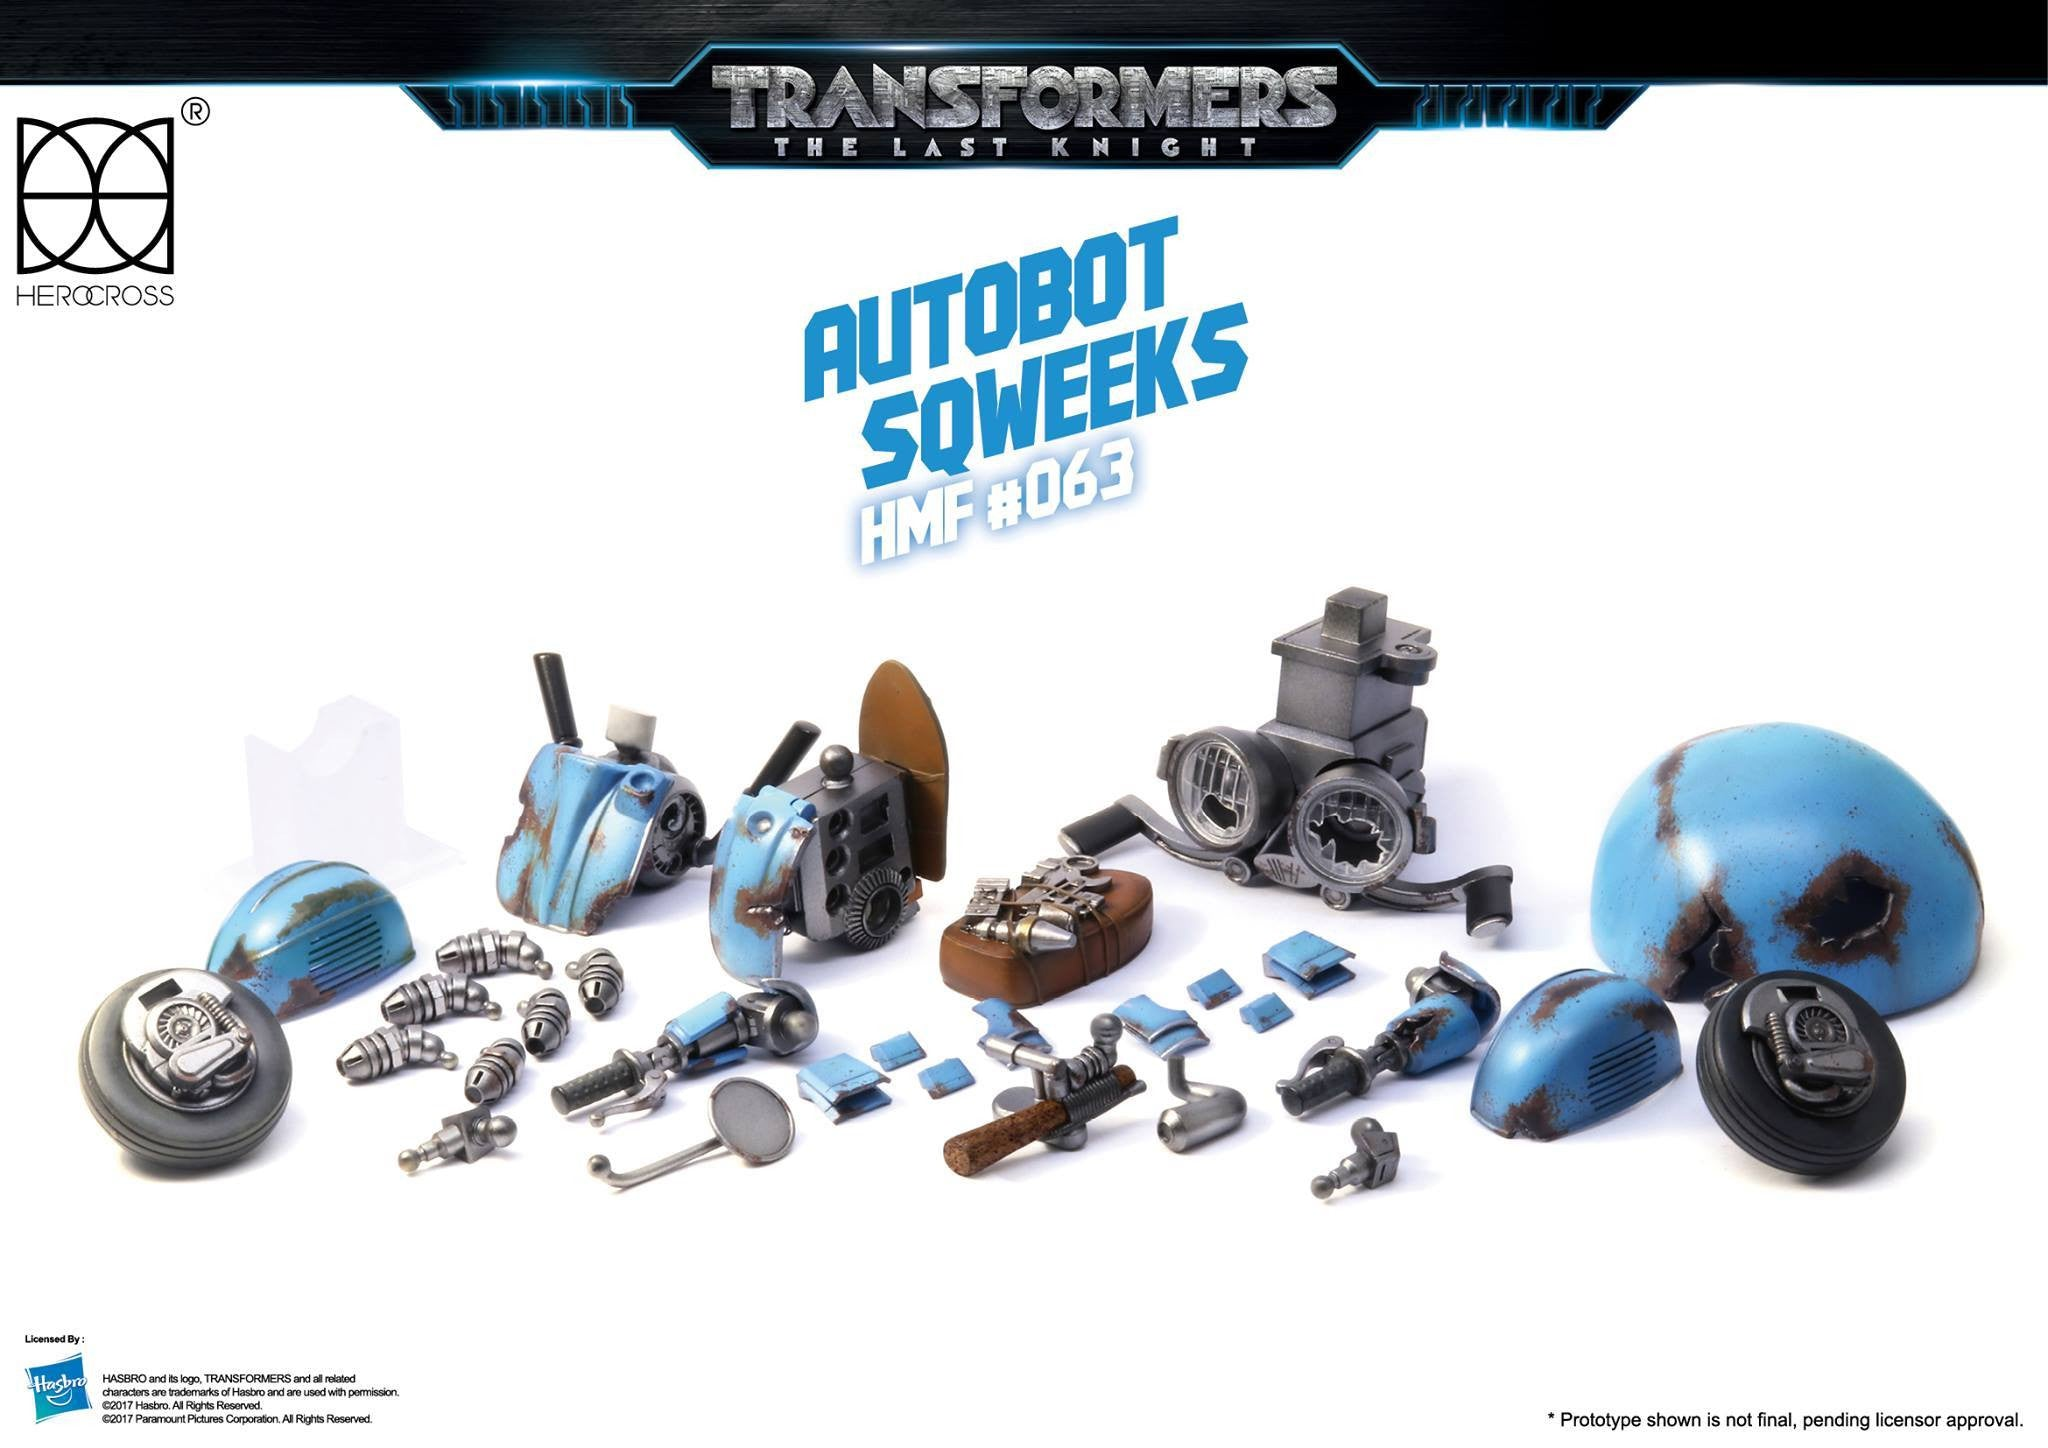 Herocross - Hybrid Metal Figuration HMF063 - Transformers: The Last Knight - Autobot Sqweeks